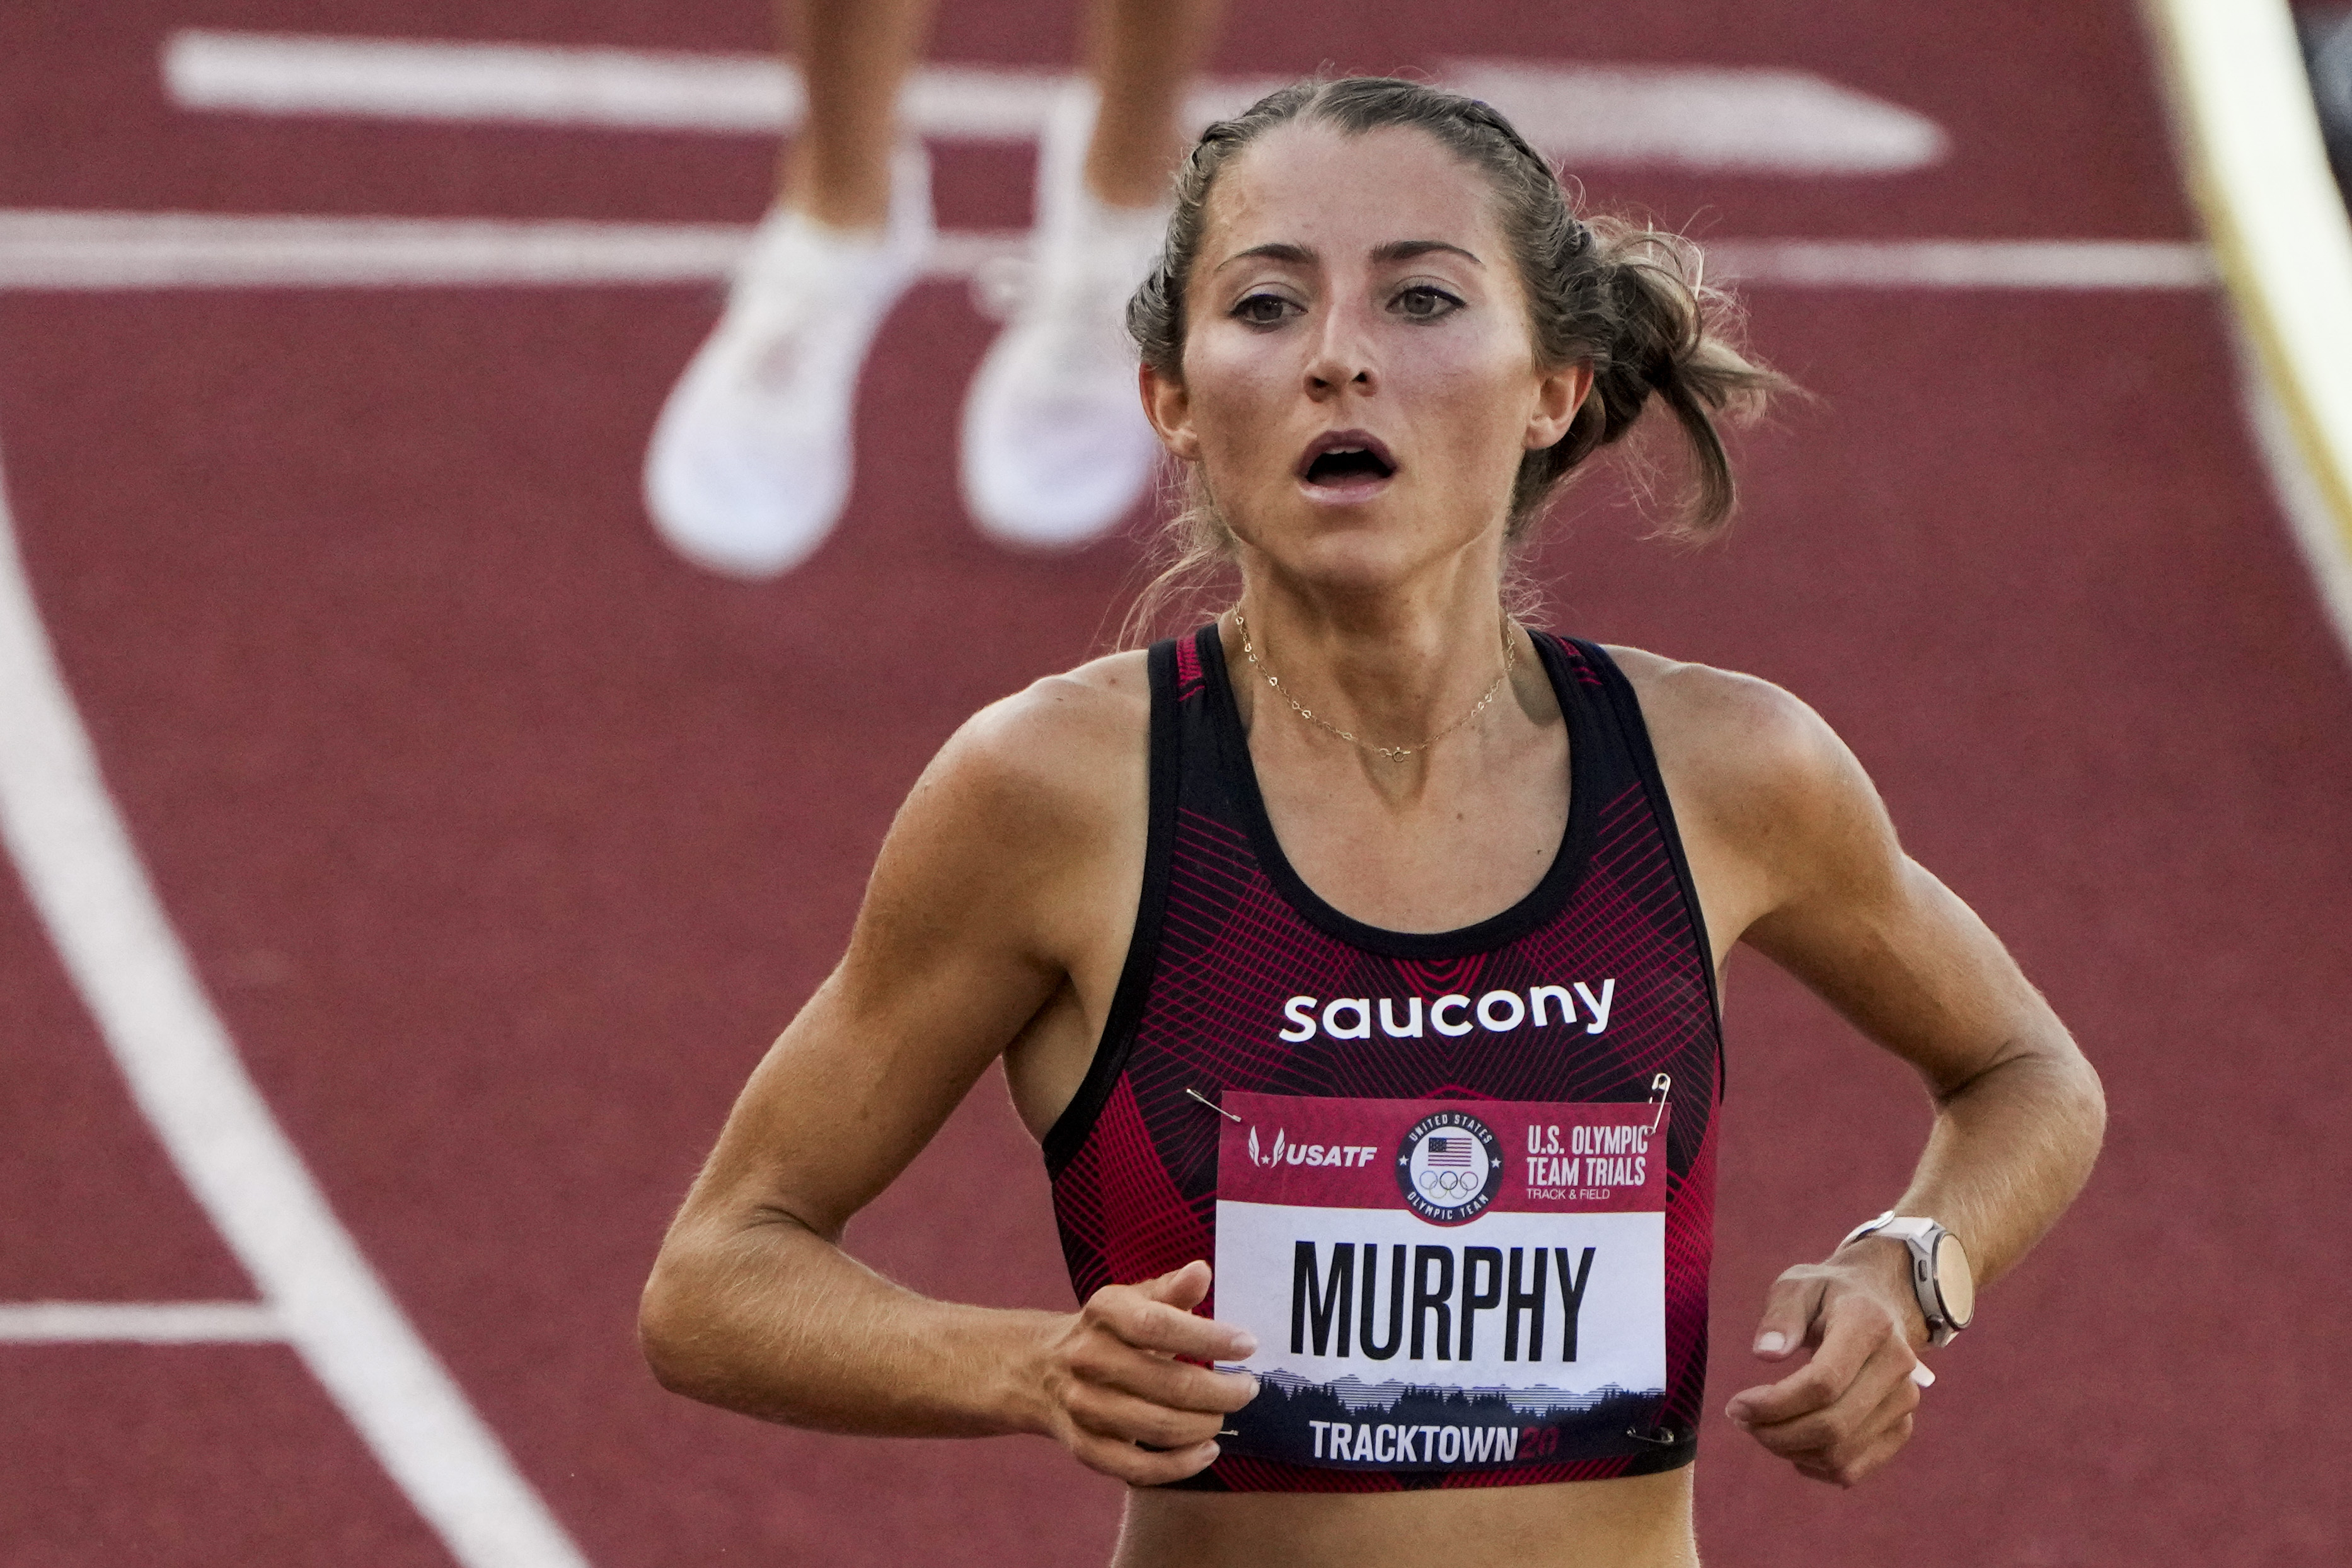 Grayson Murphy, a West High grad who ran at the University of Utah, and BYU's Courtney Wayment, a Davis High grad, finished 1-2 in the first heat of the 3,000-meter steeplechase.